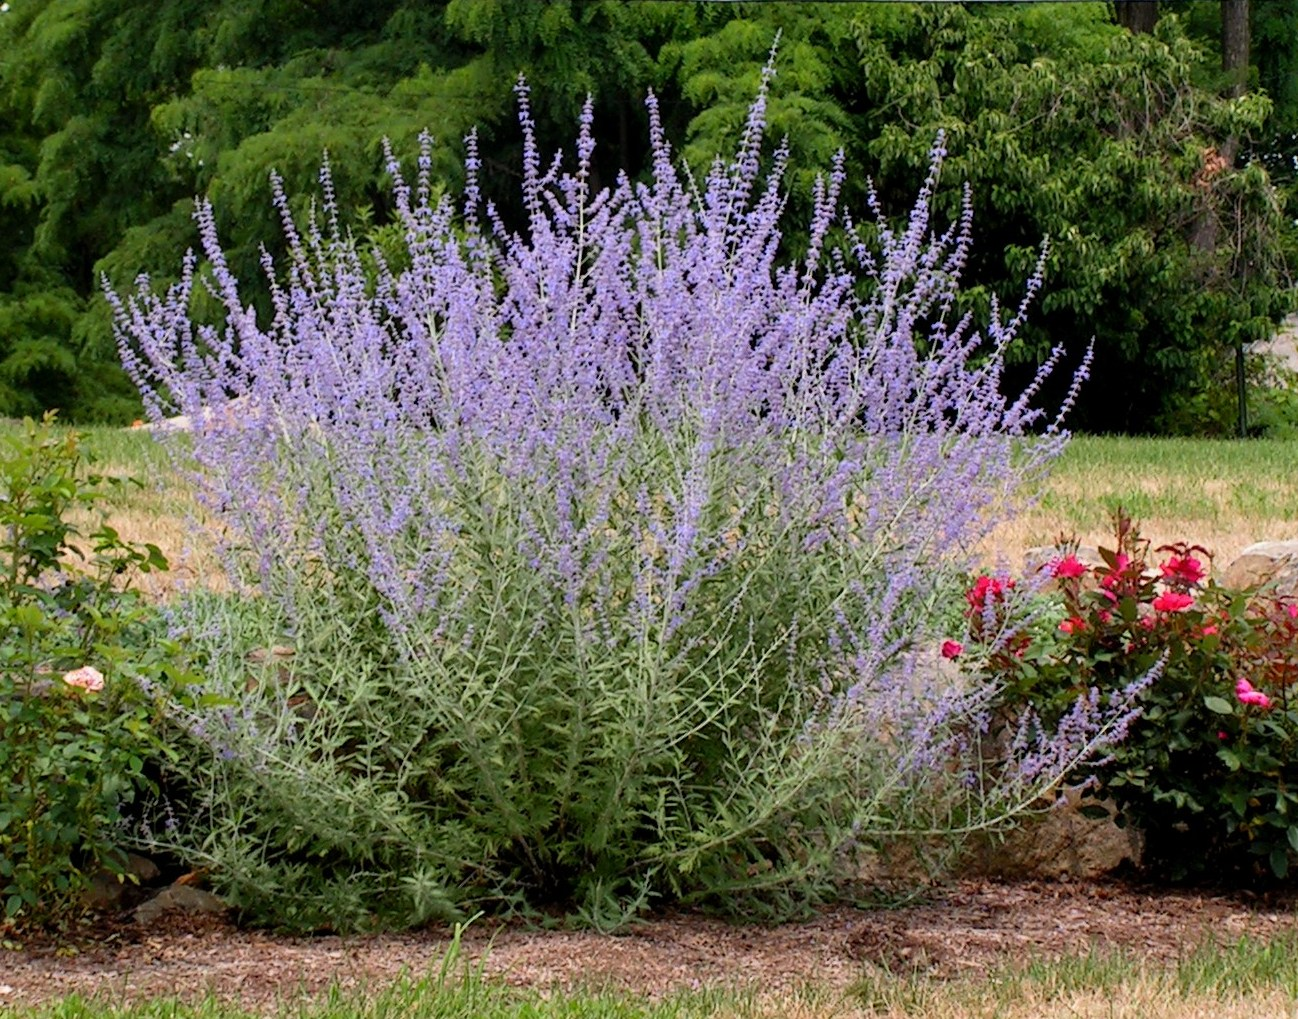 Landscaping With Lavender Plants : More to come but first we need landscape and figure out the